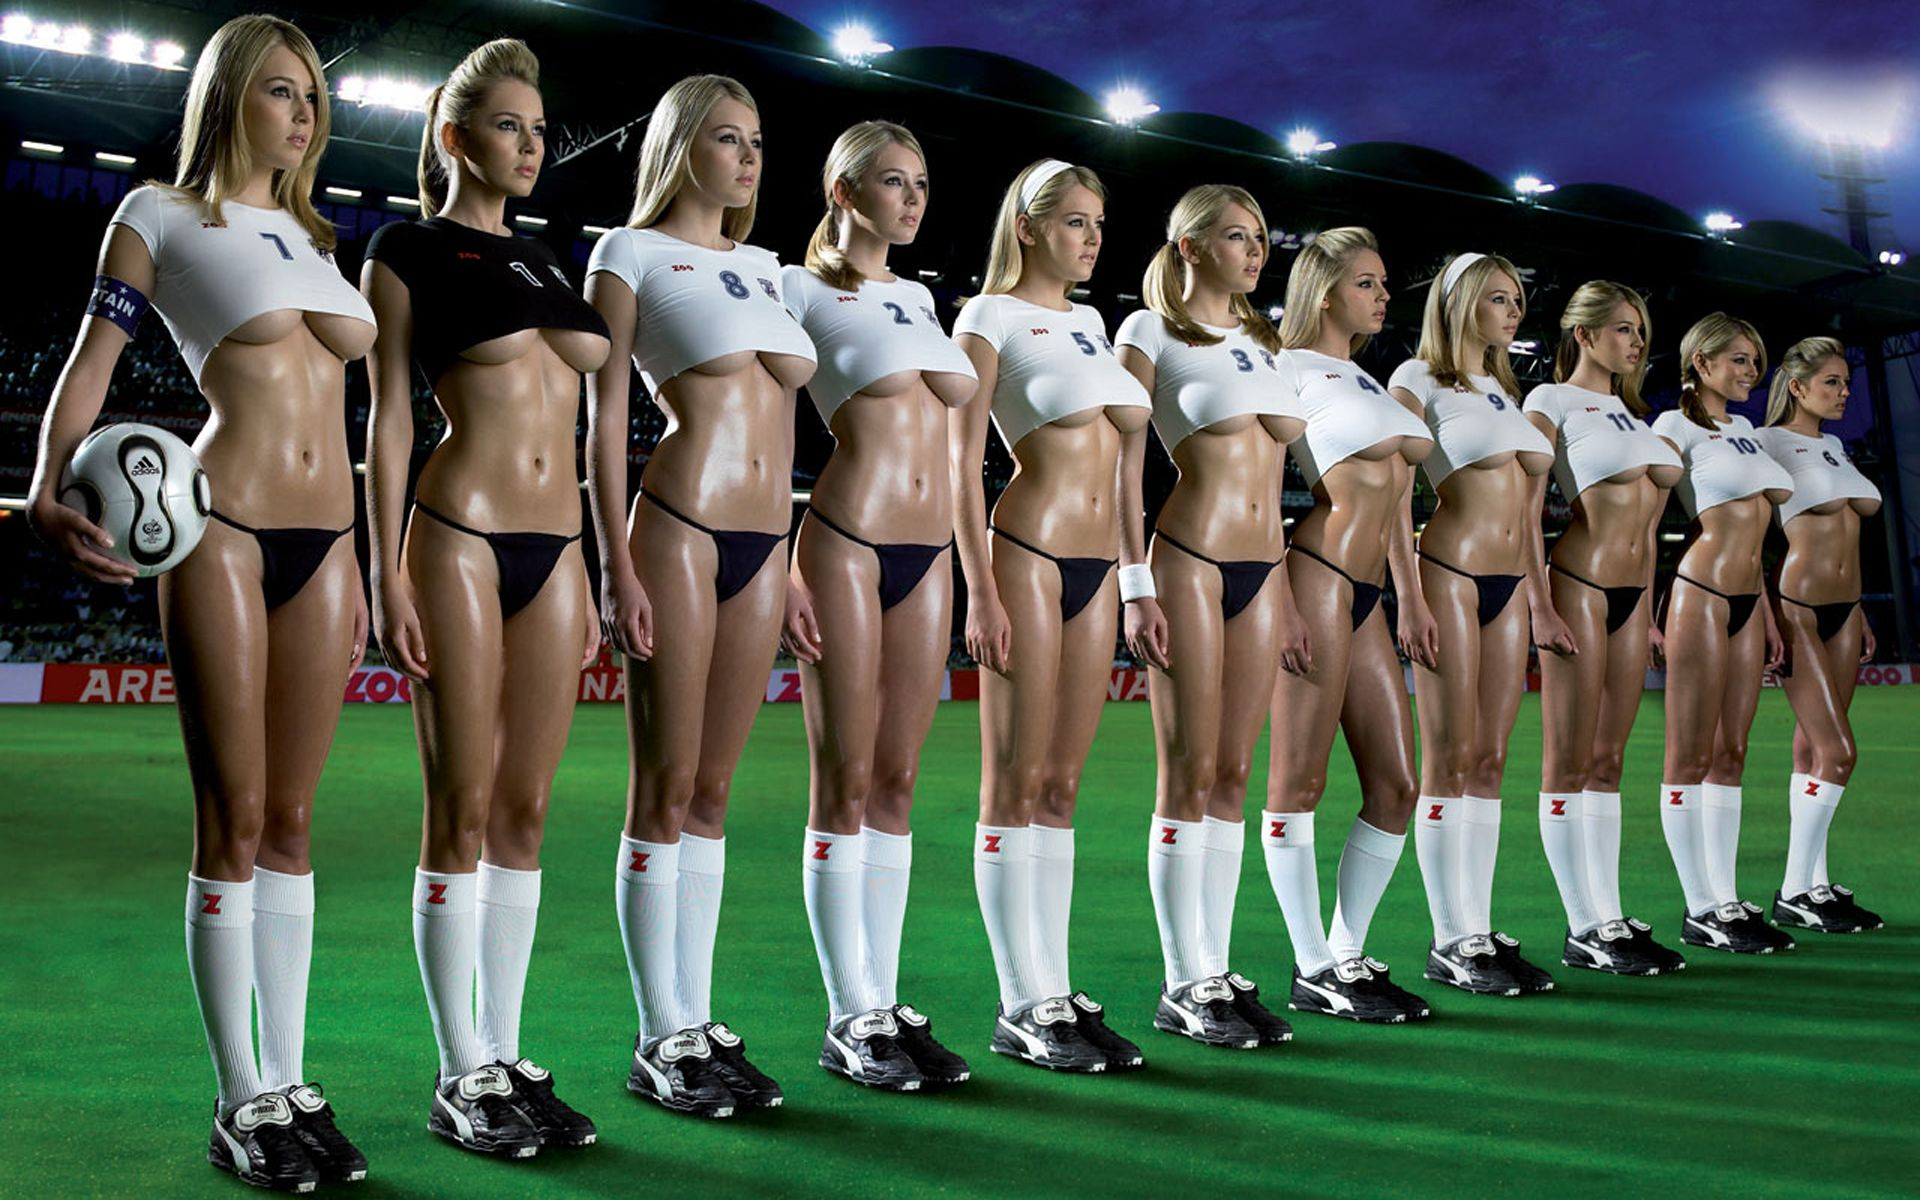 pre-women-soccer-porn-pictures